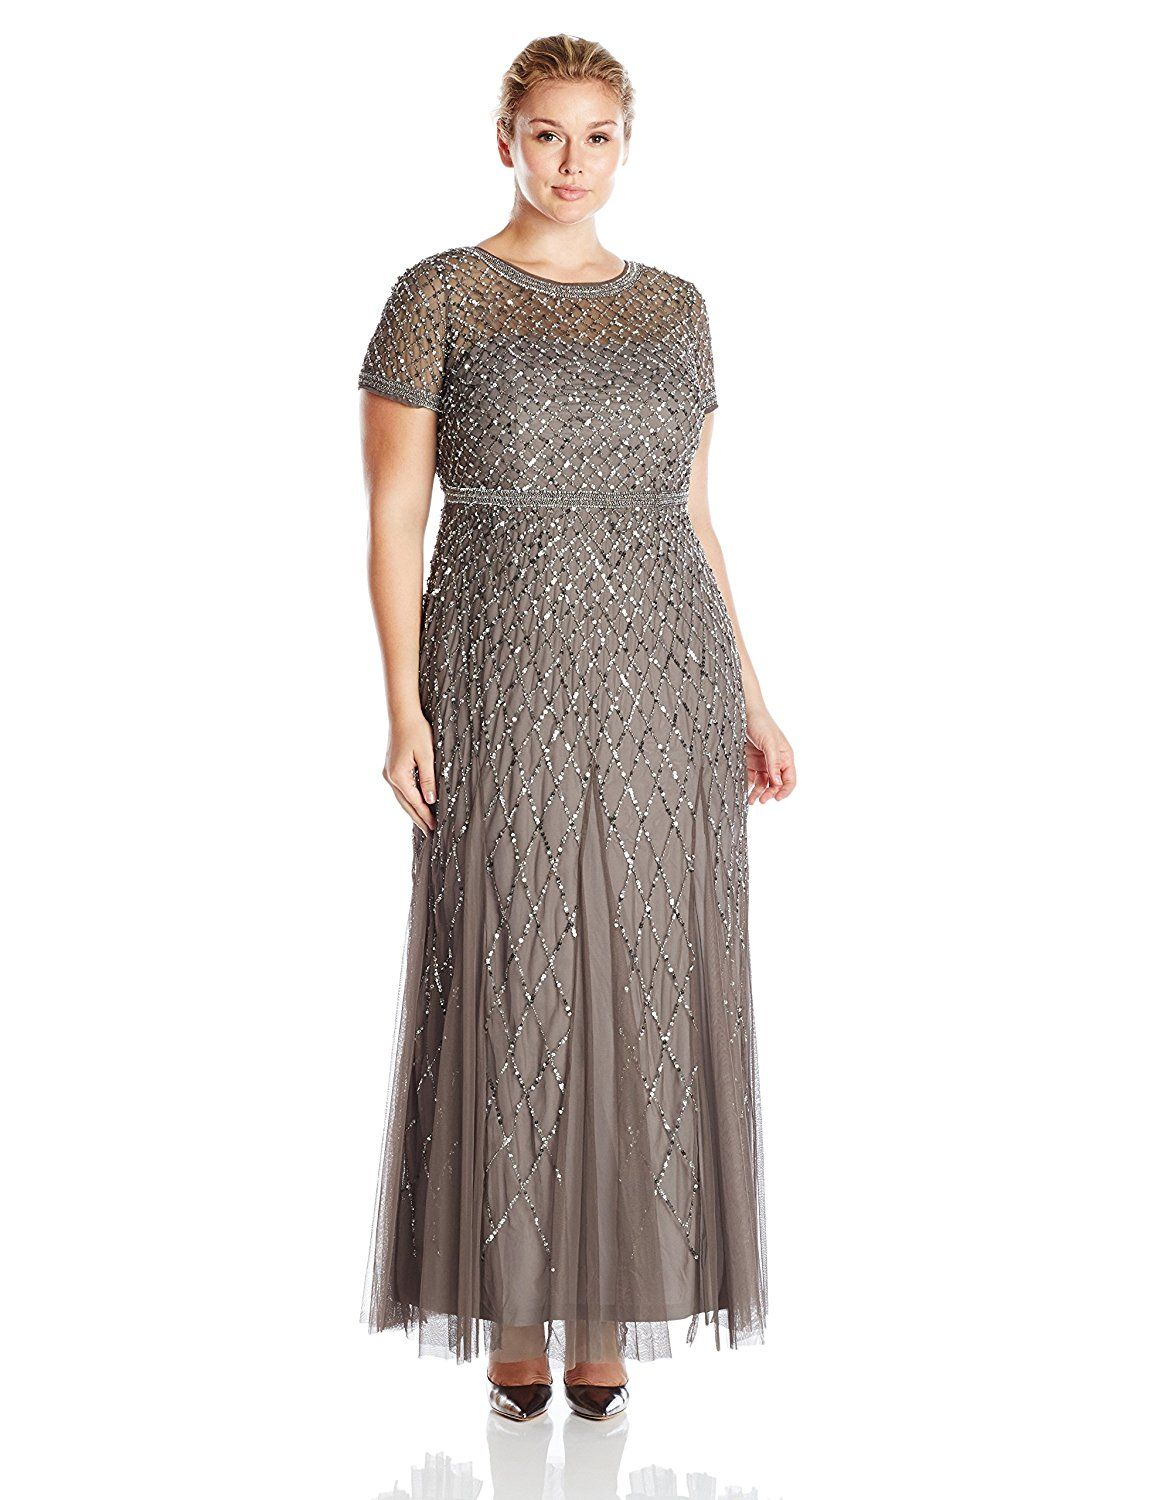 5fa470496122 Adrianna Papell Women's Plus Size Cap Sleeve Fully Beaded Gown with  Illusion Neckline * Additional details at the pin image, click it : Plus  size dresses